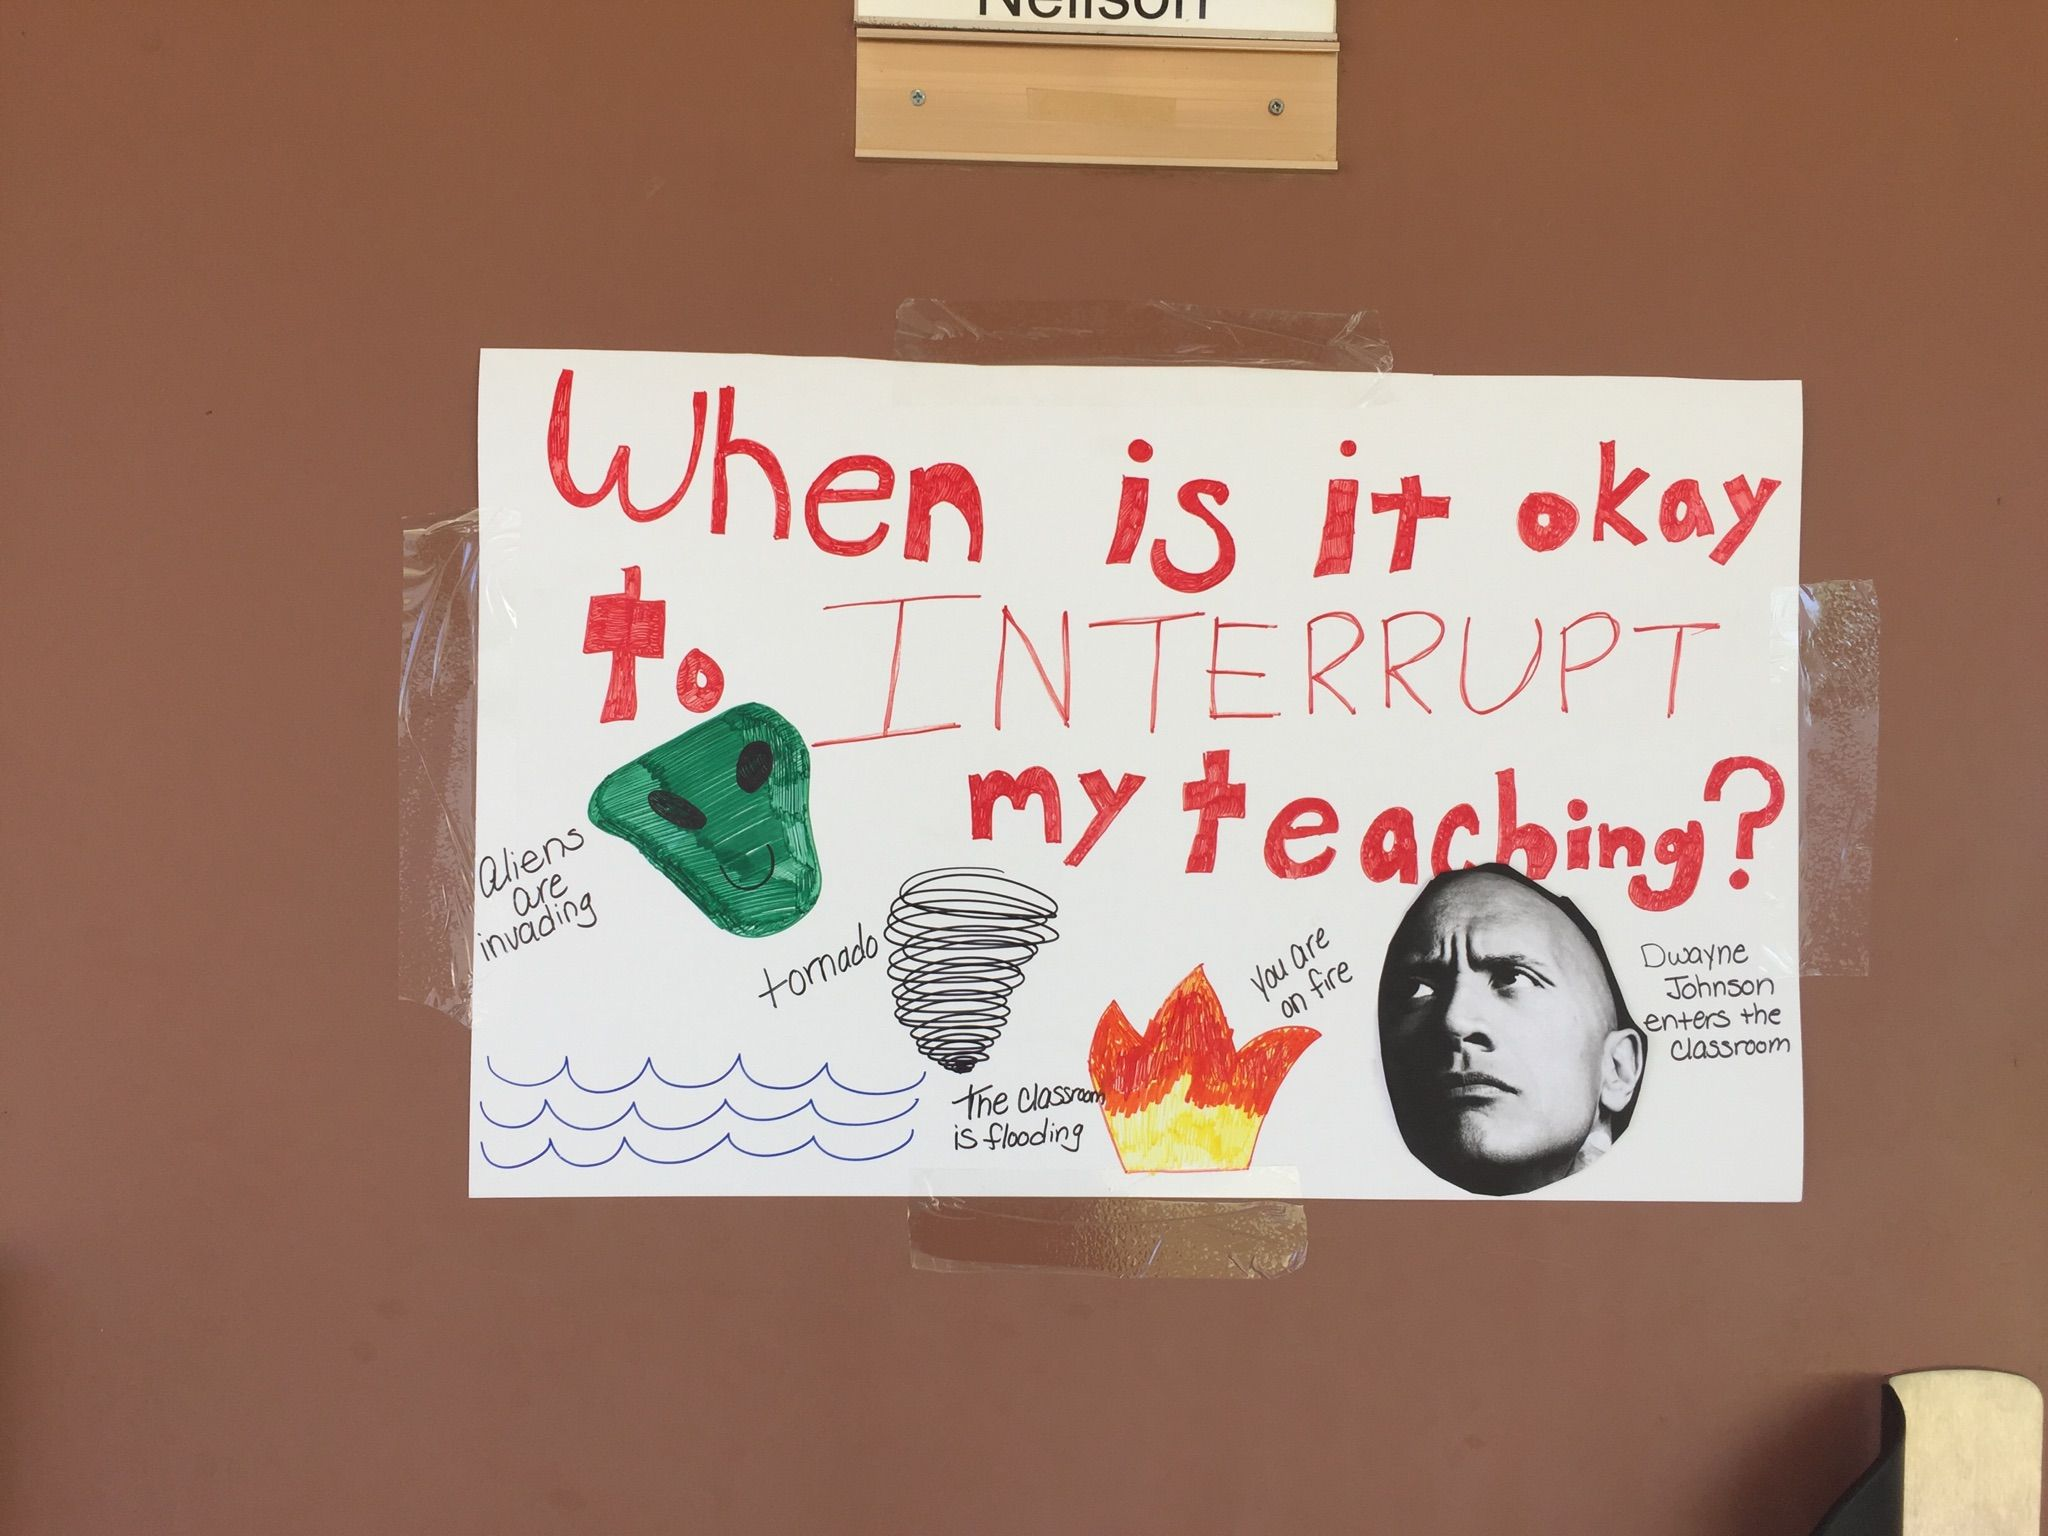 Funny sign that I saw on a classroom door at work